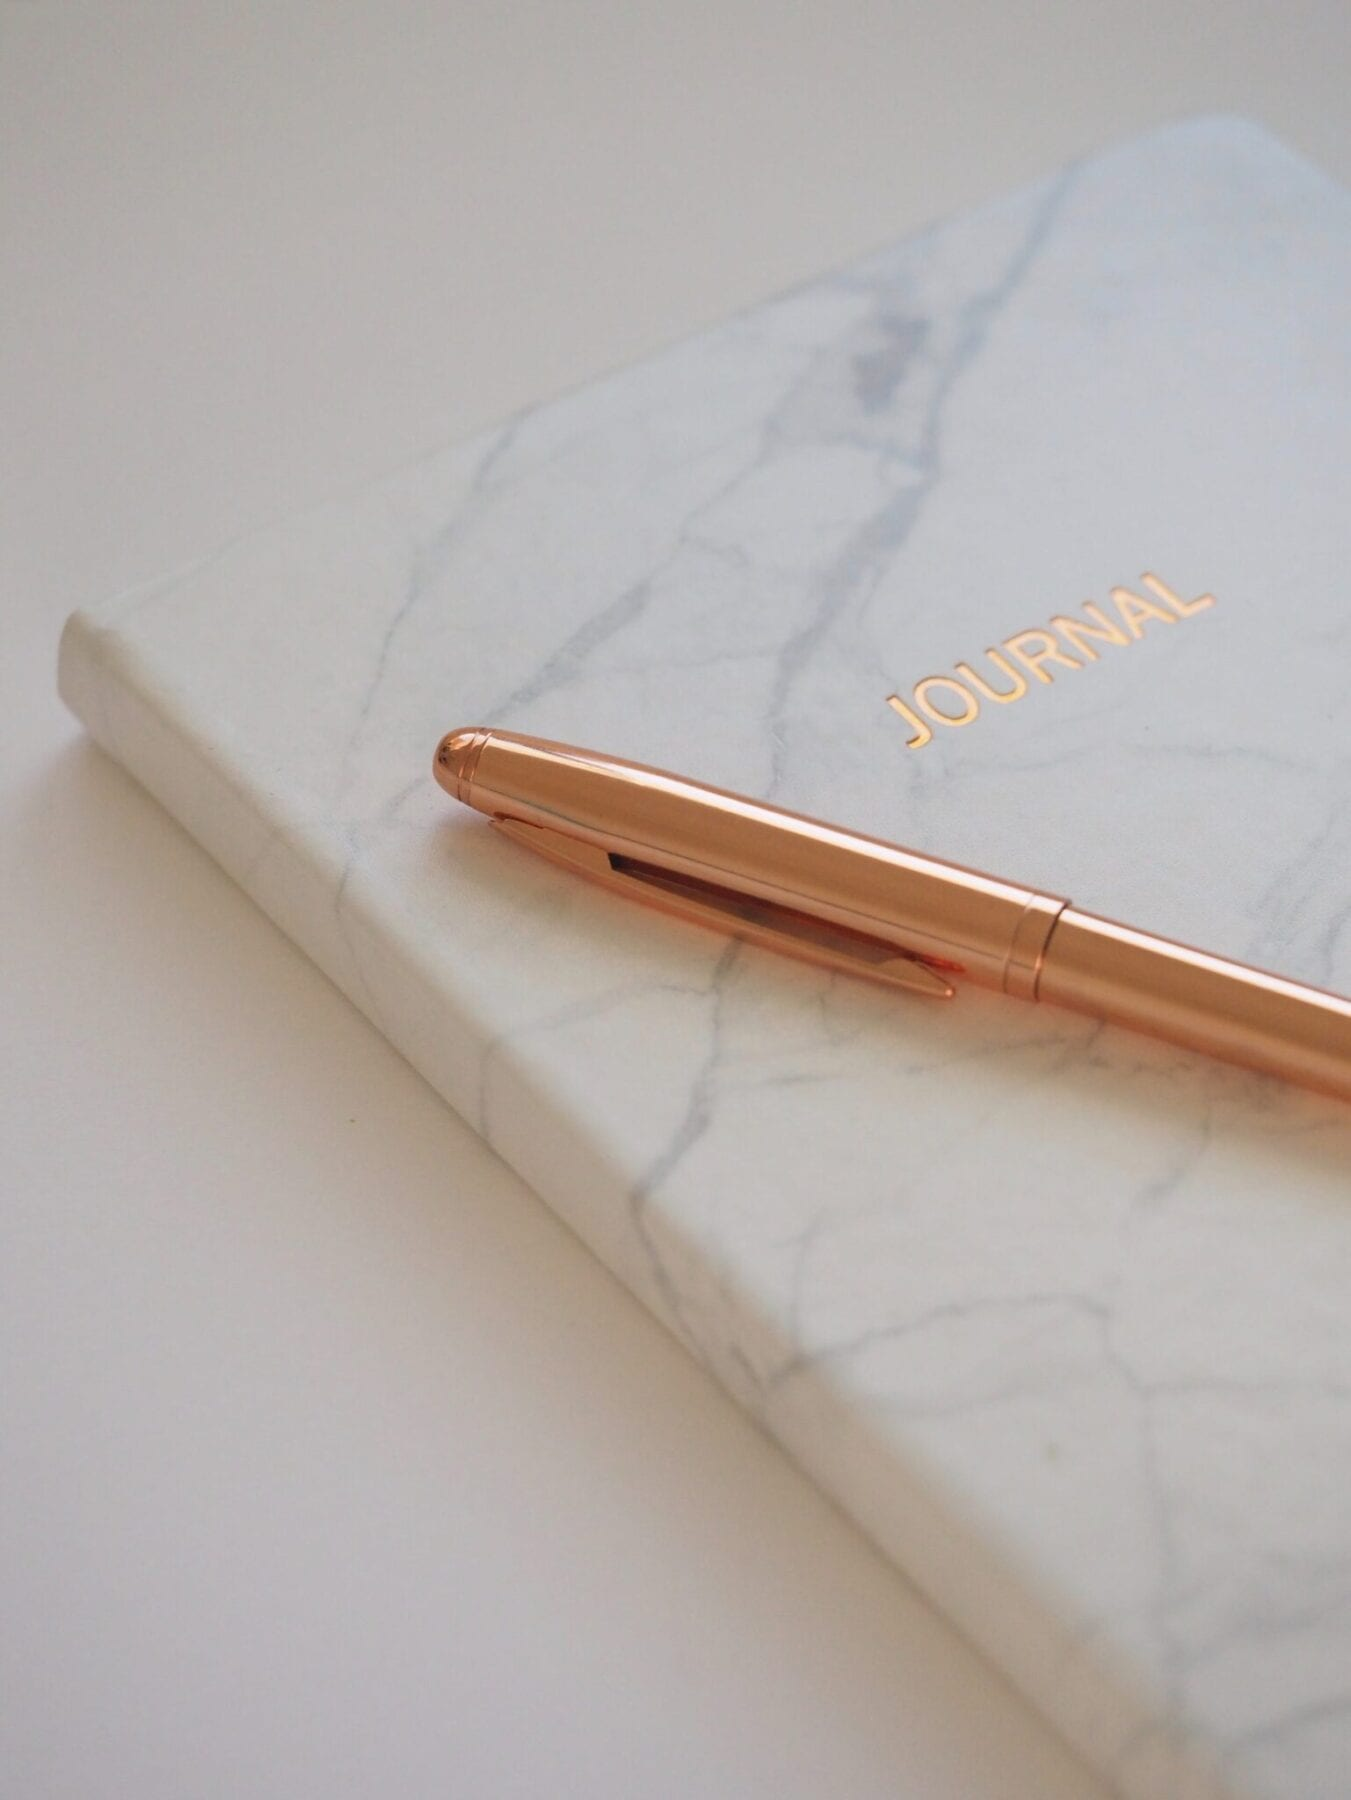 Gold Pen on Journal Book To Develop Curiosity